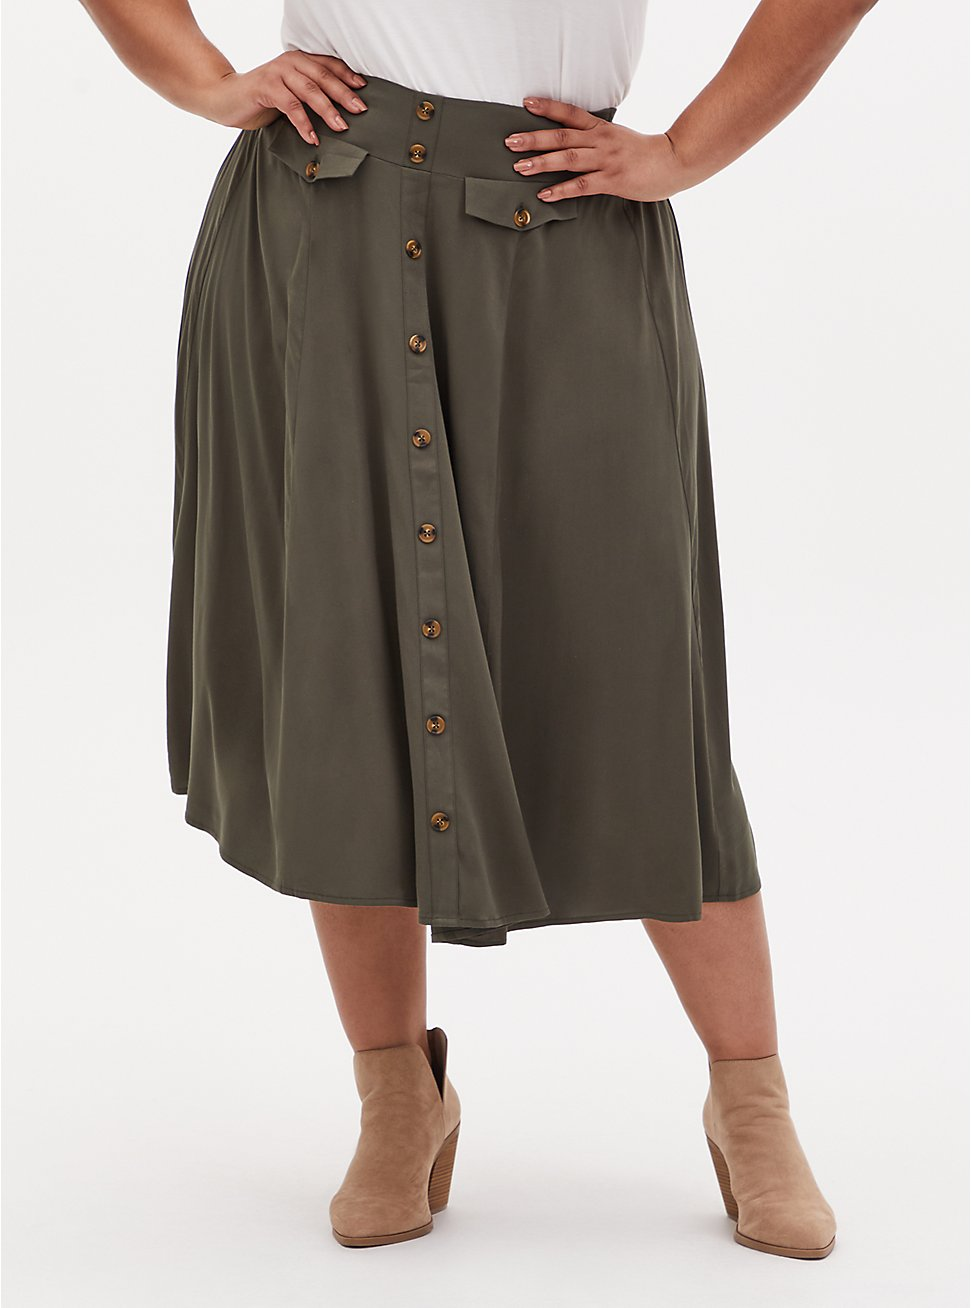 Olive Green Challis High Waist Button Midi Skirt, DEEP DEPTHS, hi-res